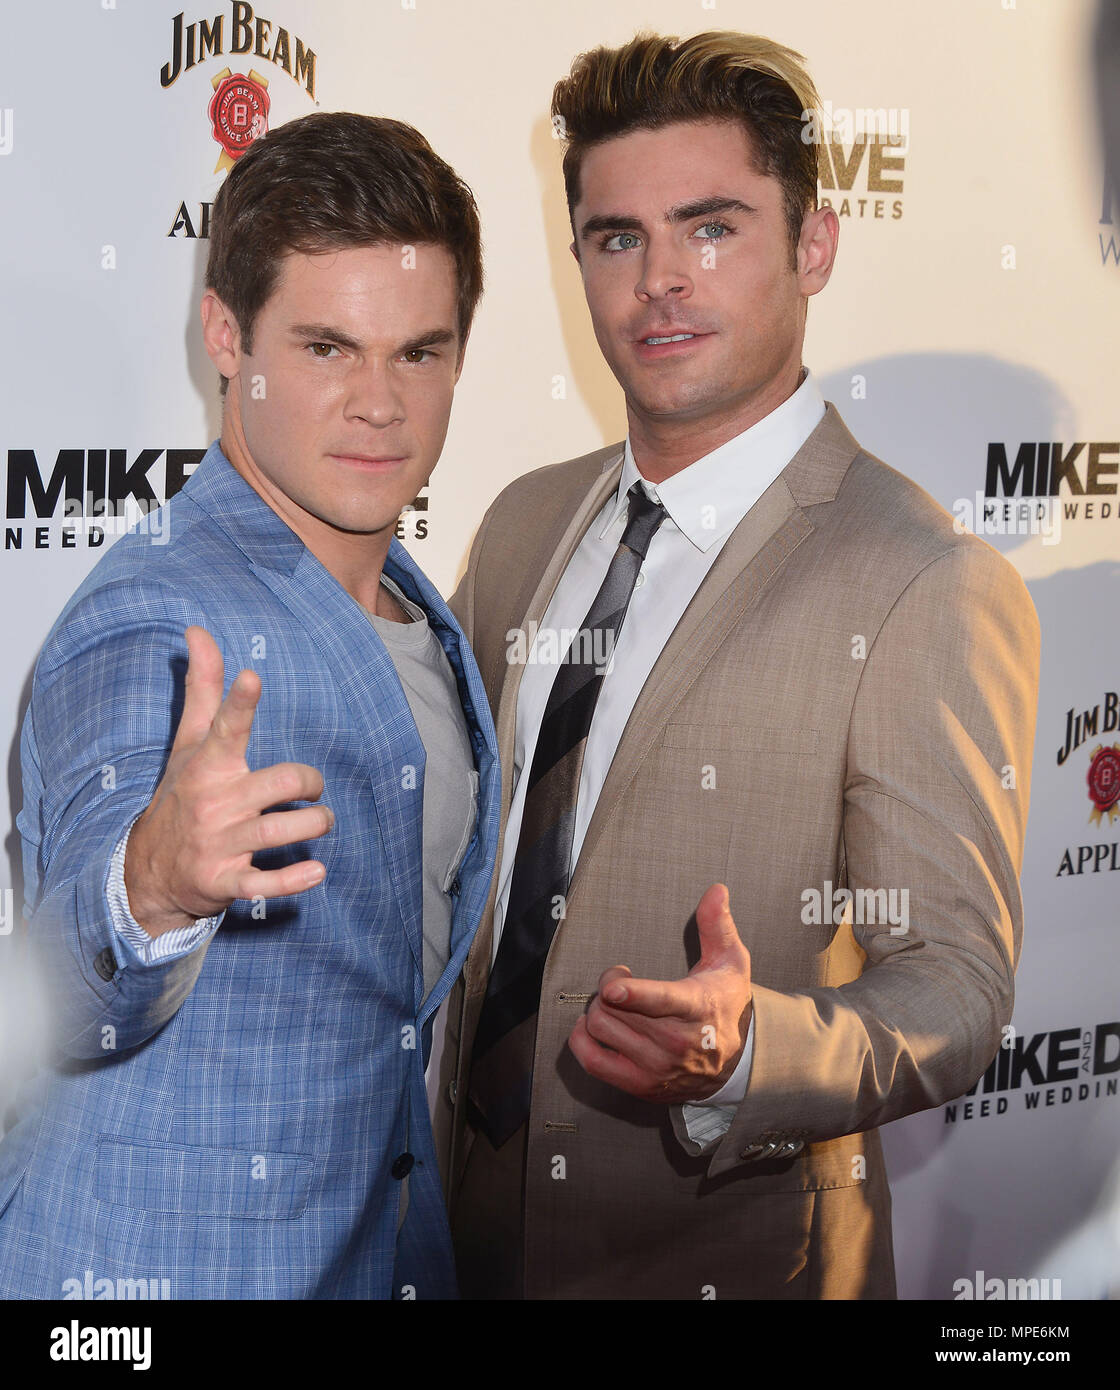 Adam Devine Zac Efron 023 At The Mike Dave Need Wedding Dates A